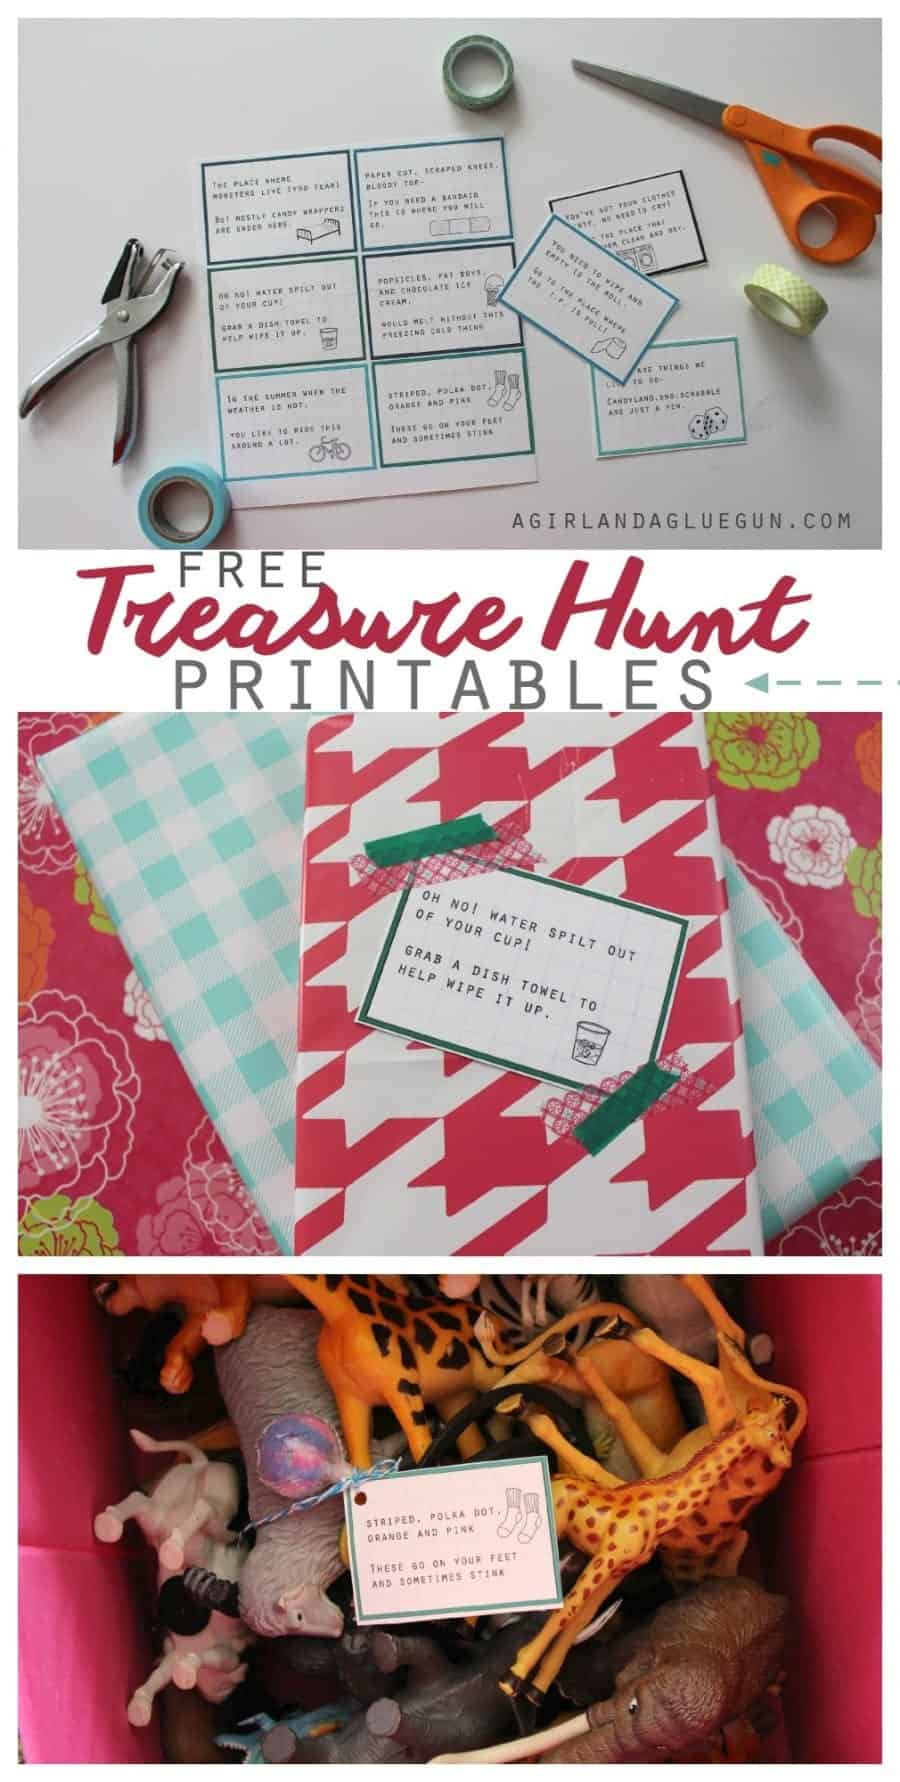 free-treasure-hunt-printables-900x1782